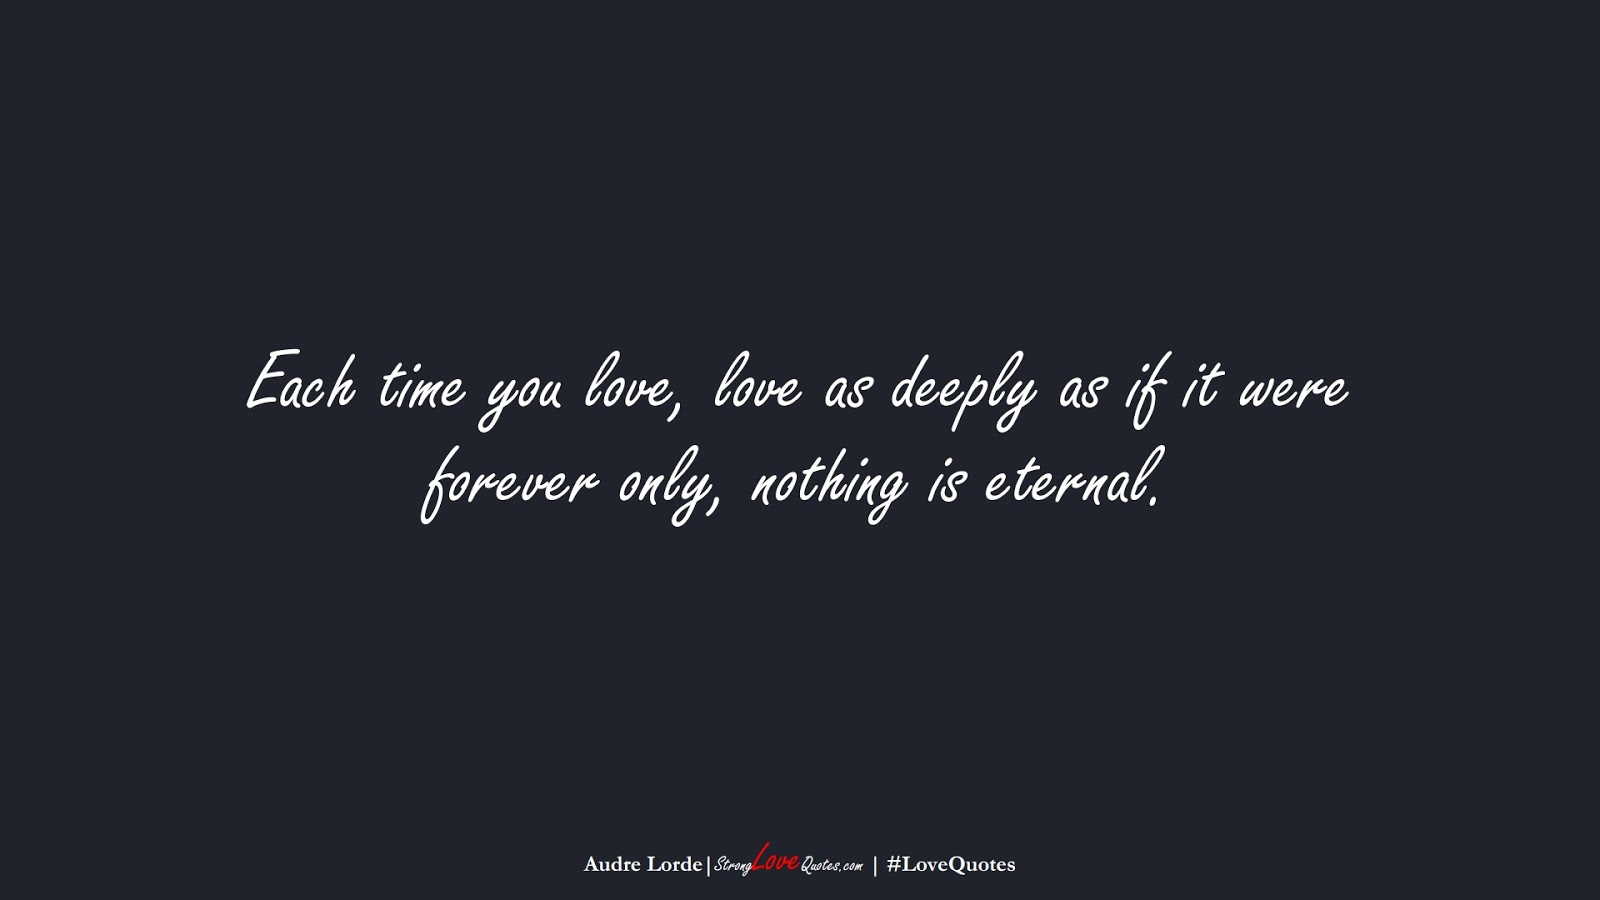 Each time you love, love as deeply as if it were forever only, nothing is eternal. (Audre Lorde);  #LoveQuotes